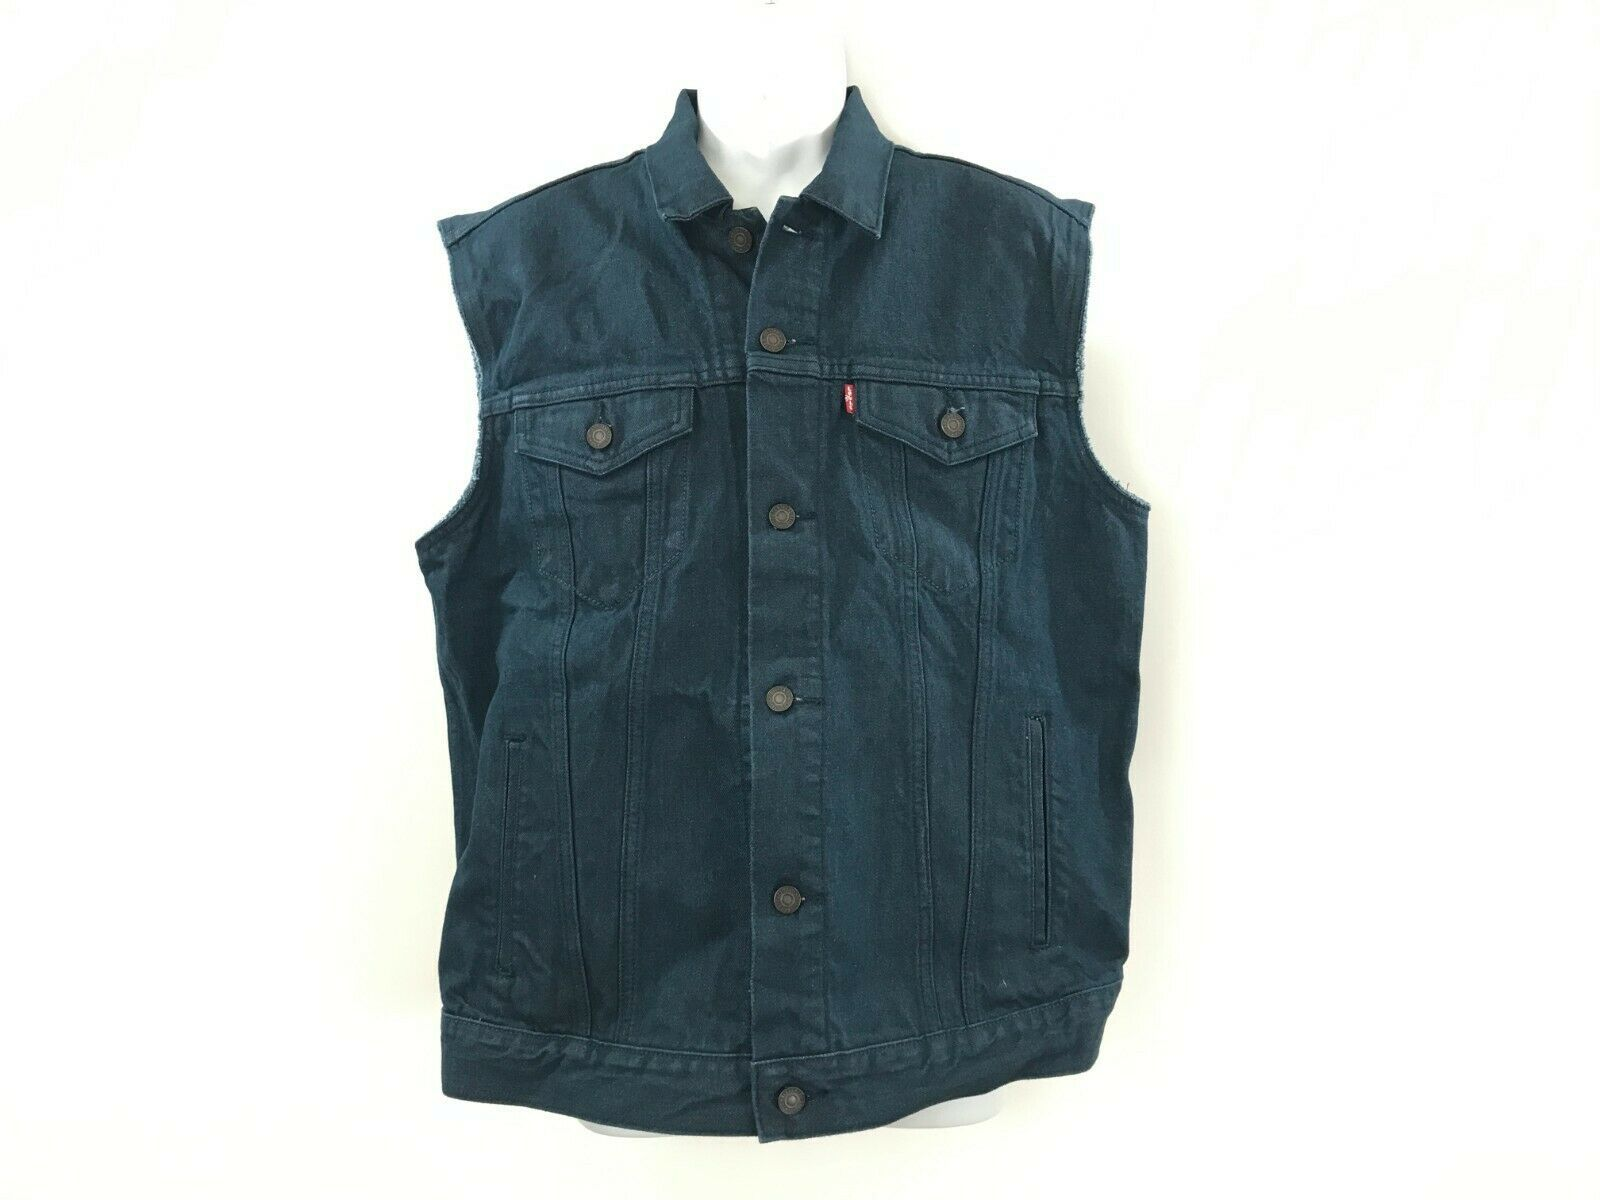 Primary image for Men's Levi's sleeveless blue jean denim vest jacket size M New tags